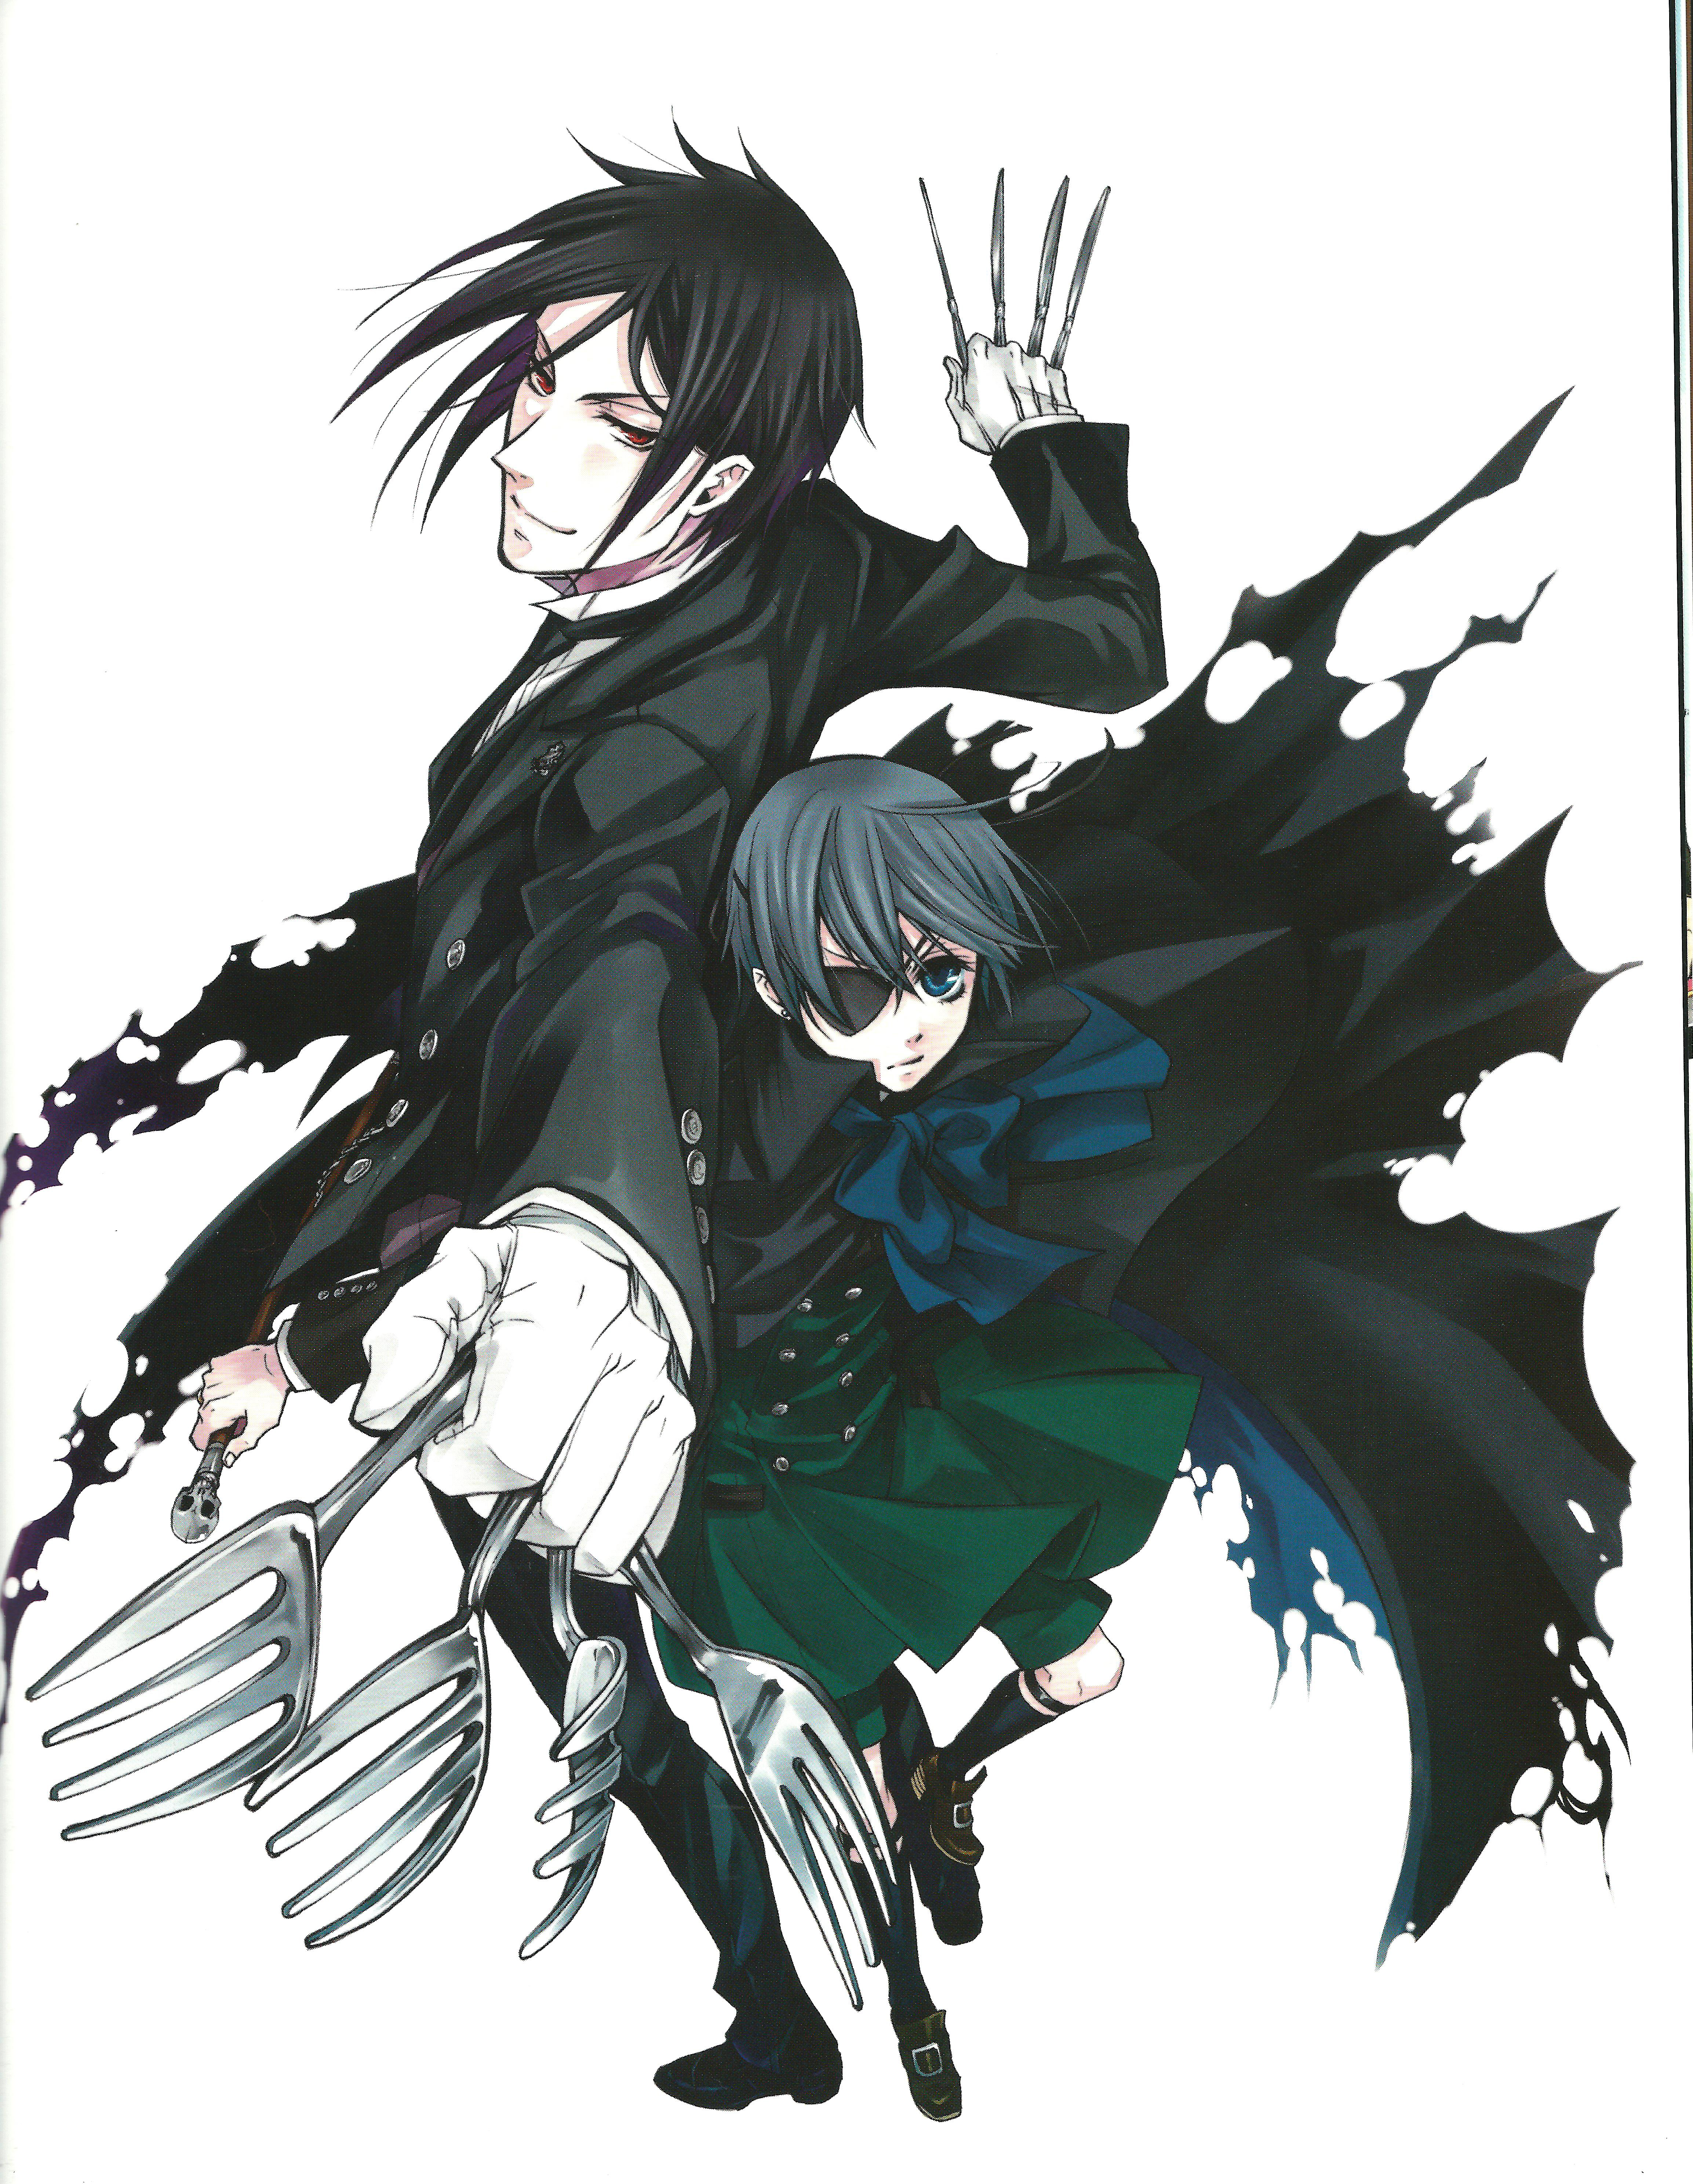 Black Butler Vol 1 Black Butler 1 By Yana Toboso